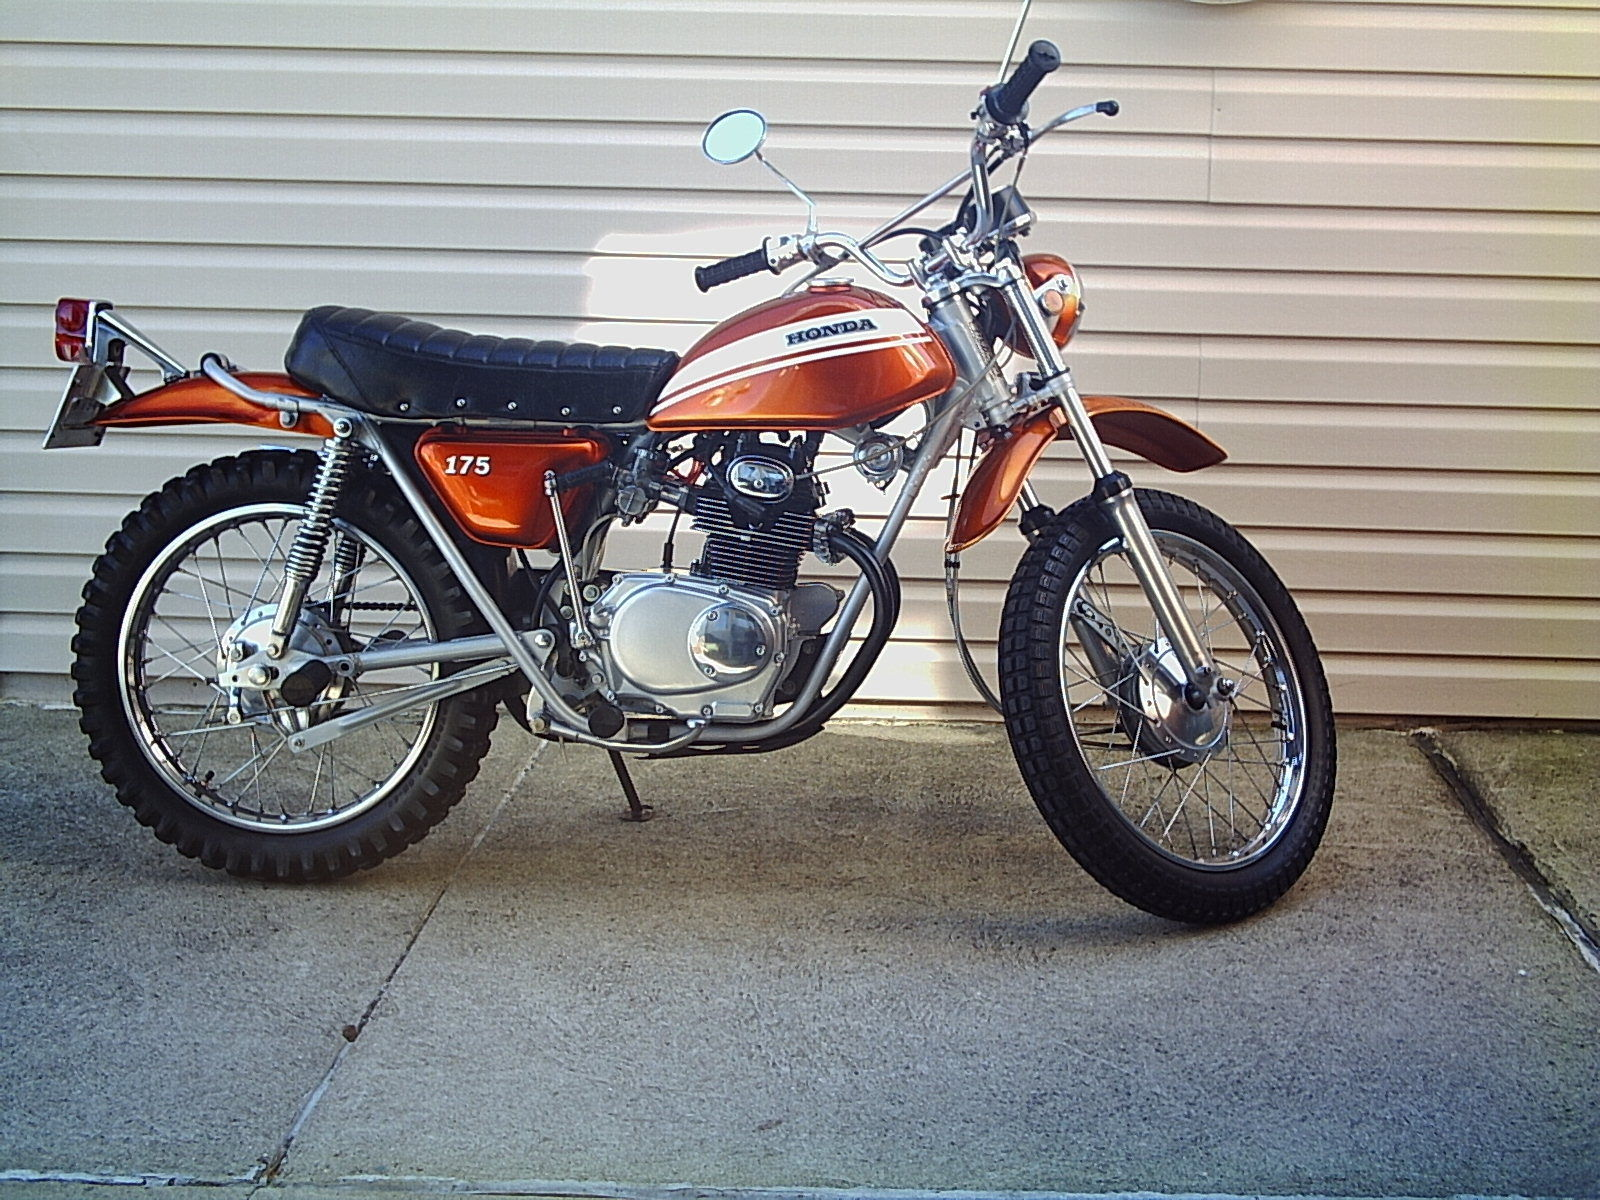 Honda sl175 photo - 8